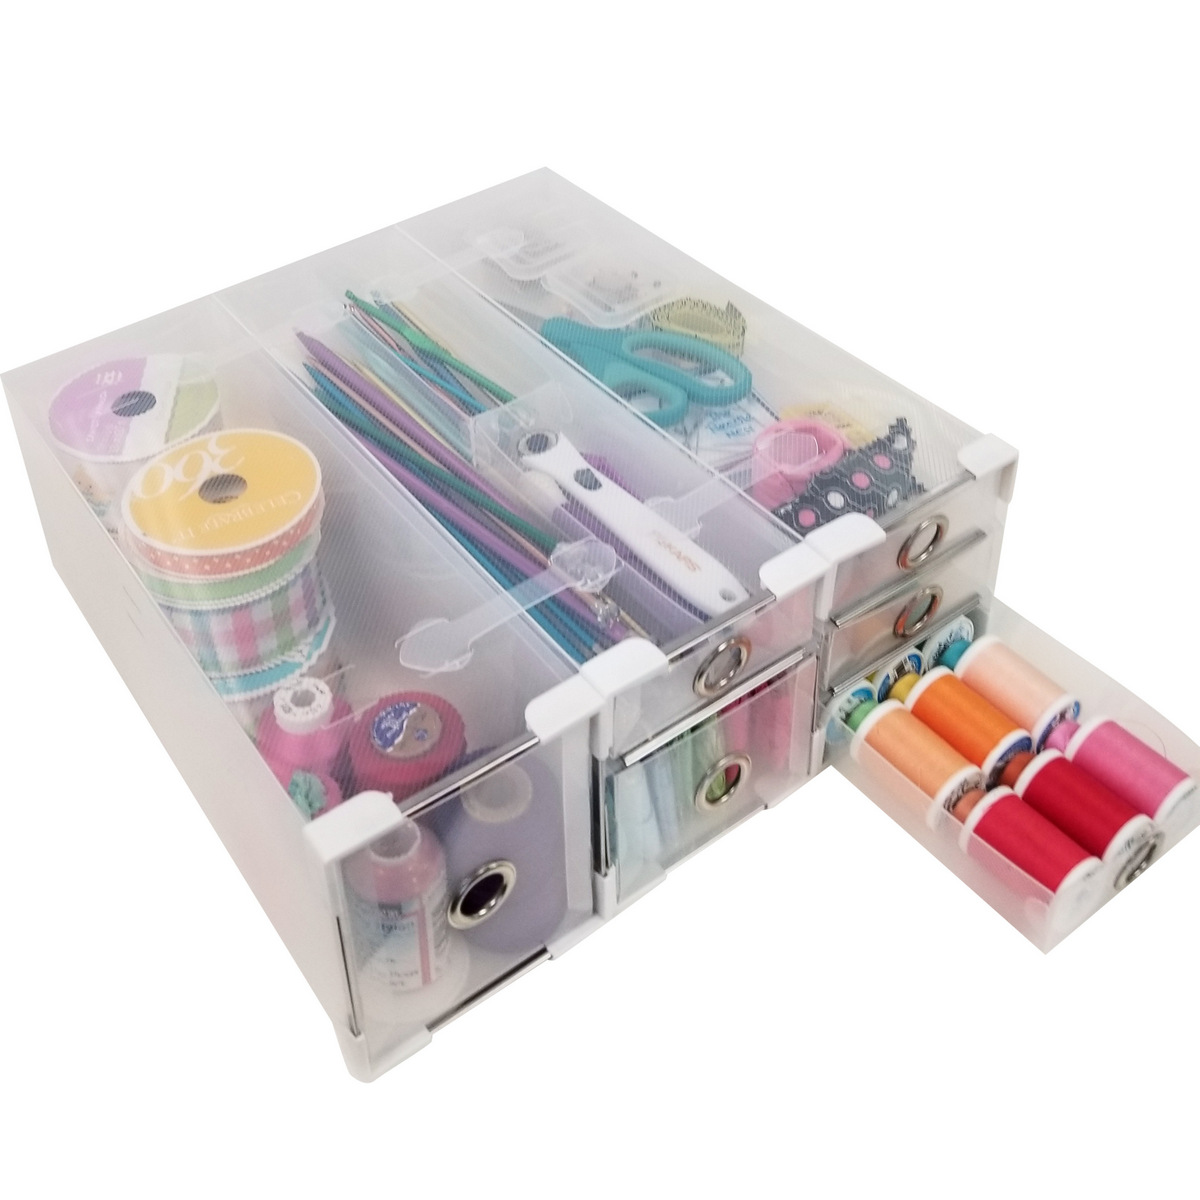 Organize sewing thread, zippers, Totally-Tiffany organizer